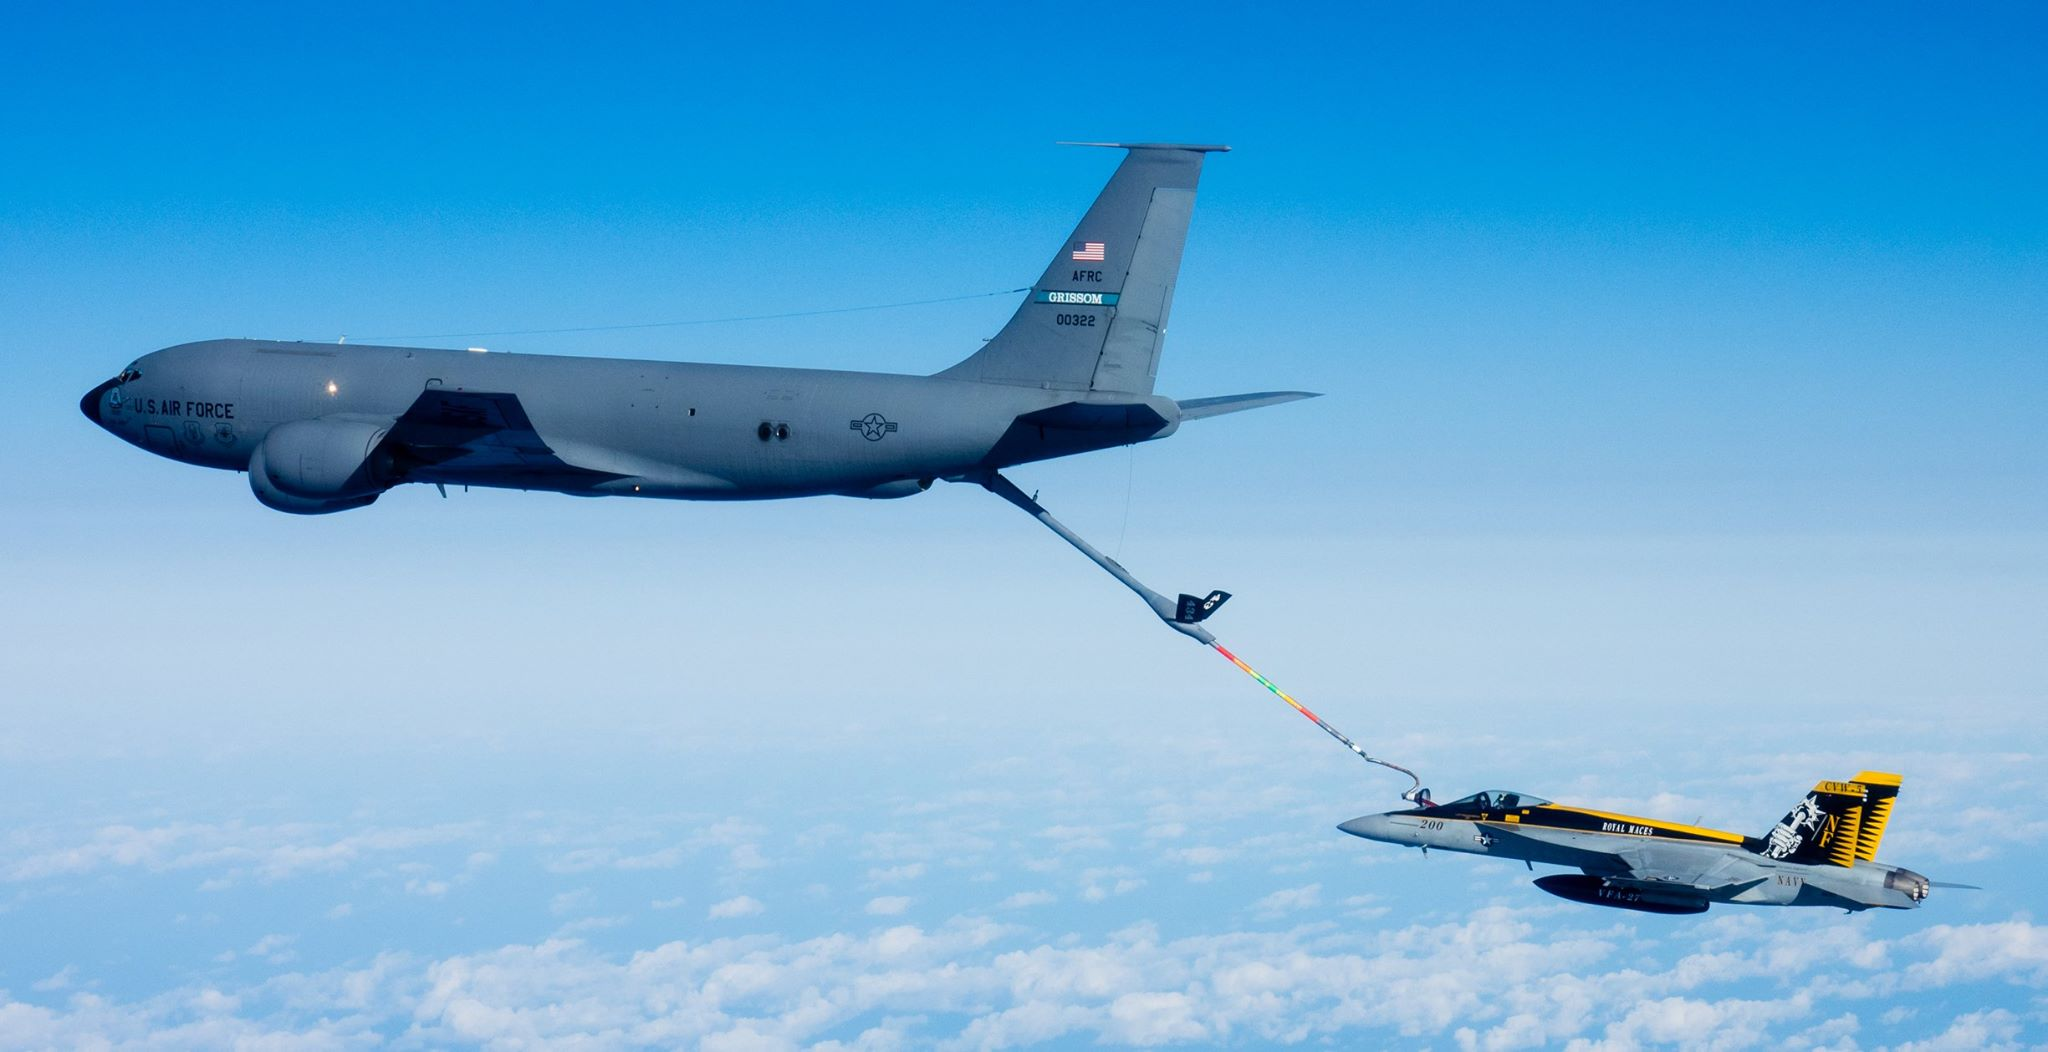 Mid-Air refuelling